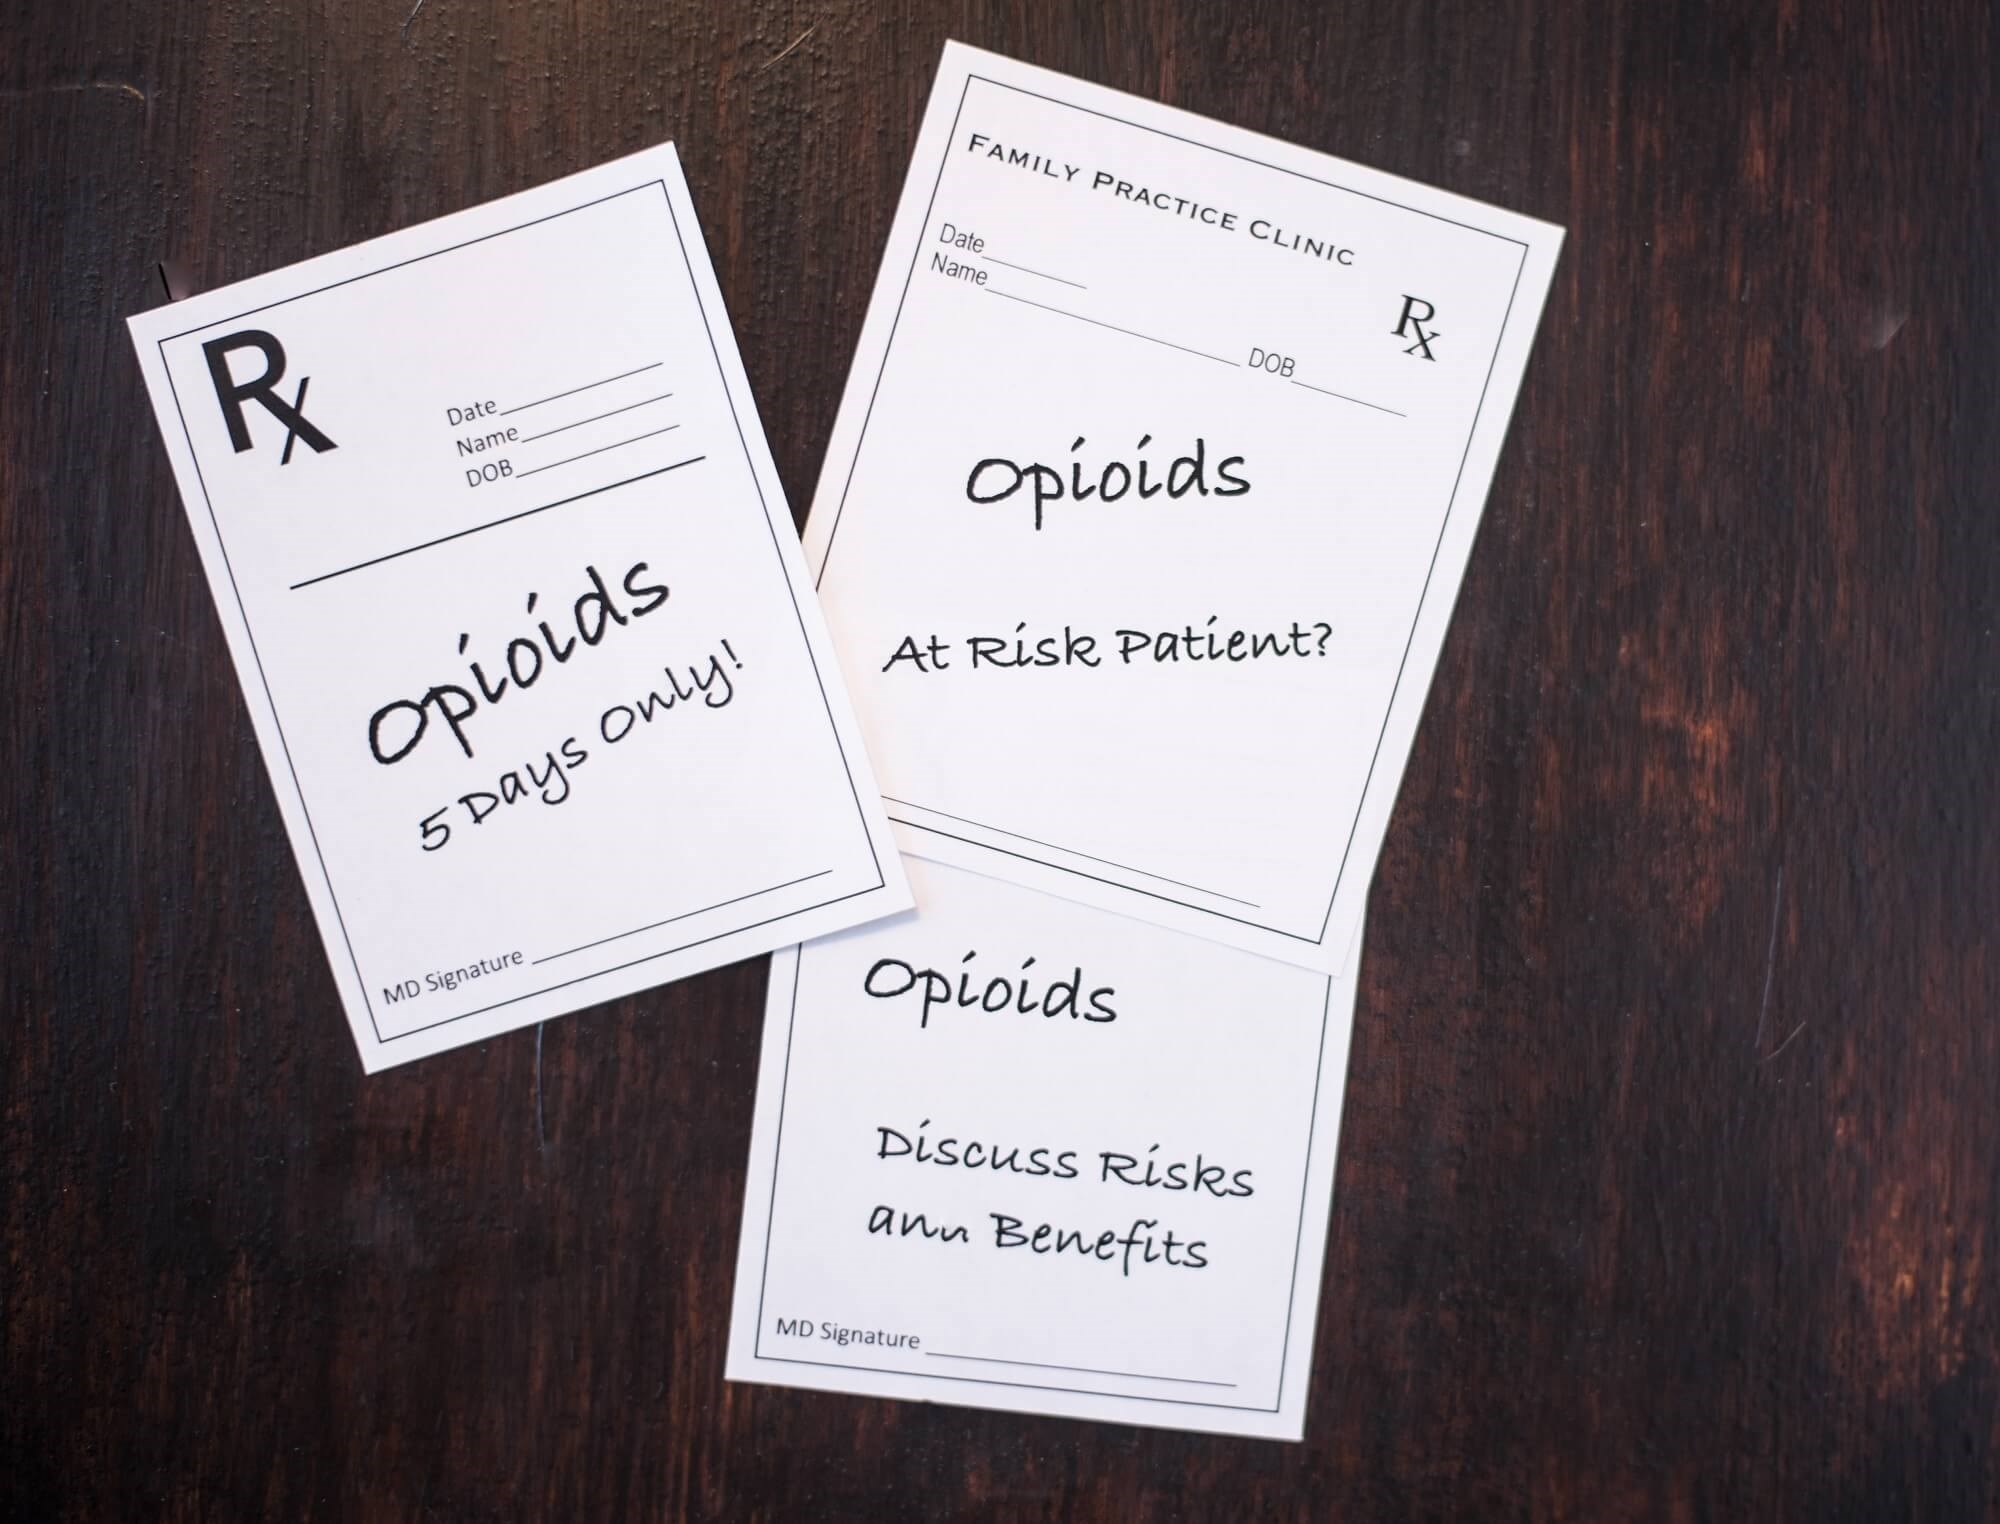 Past-year misuse of 1 medication class, either opioids or benzodiazepines, was associated with an approximate 6% increase in suicidal ideation.